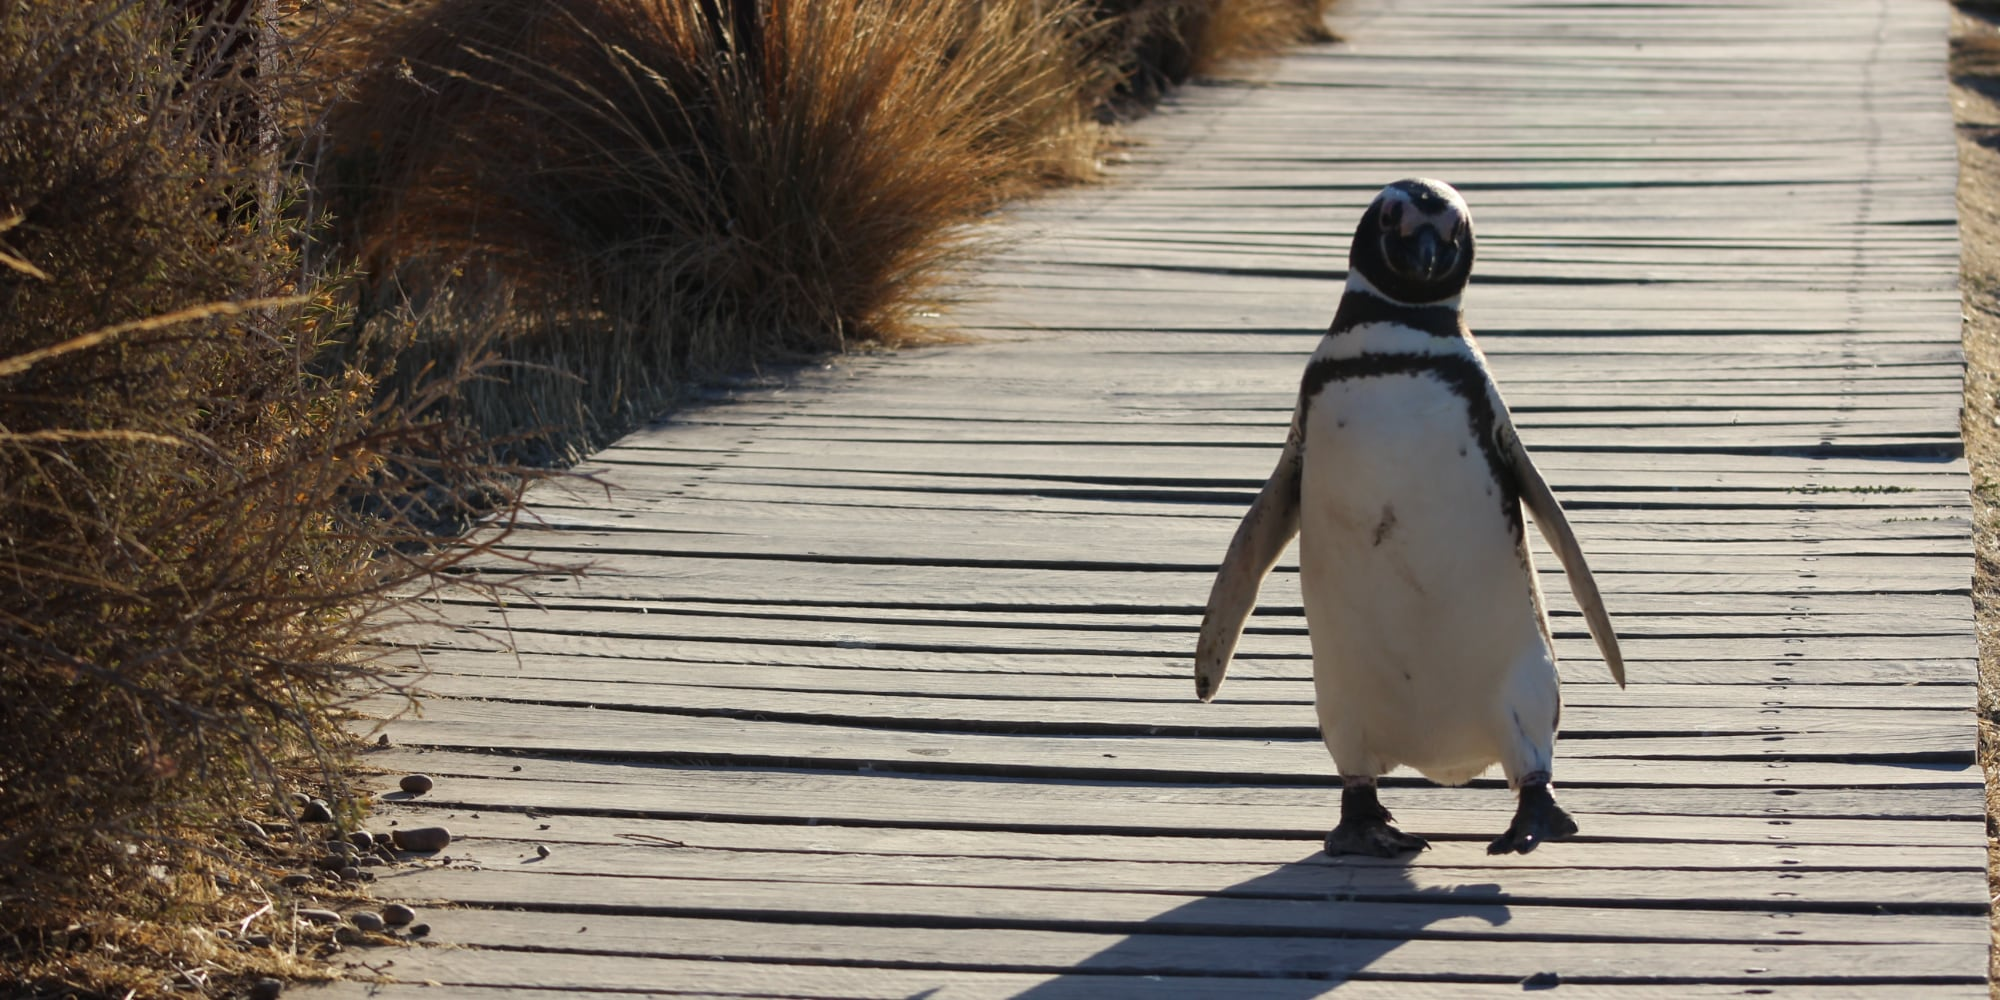 The Galapagos penguin always stays cool